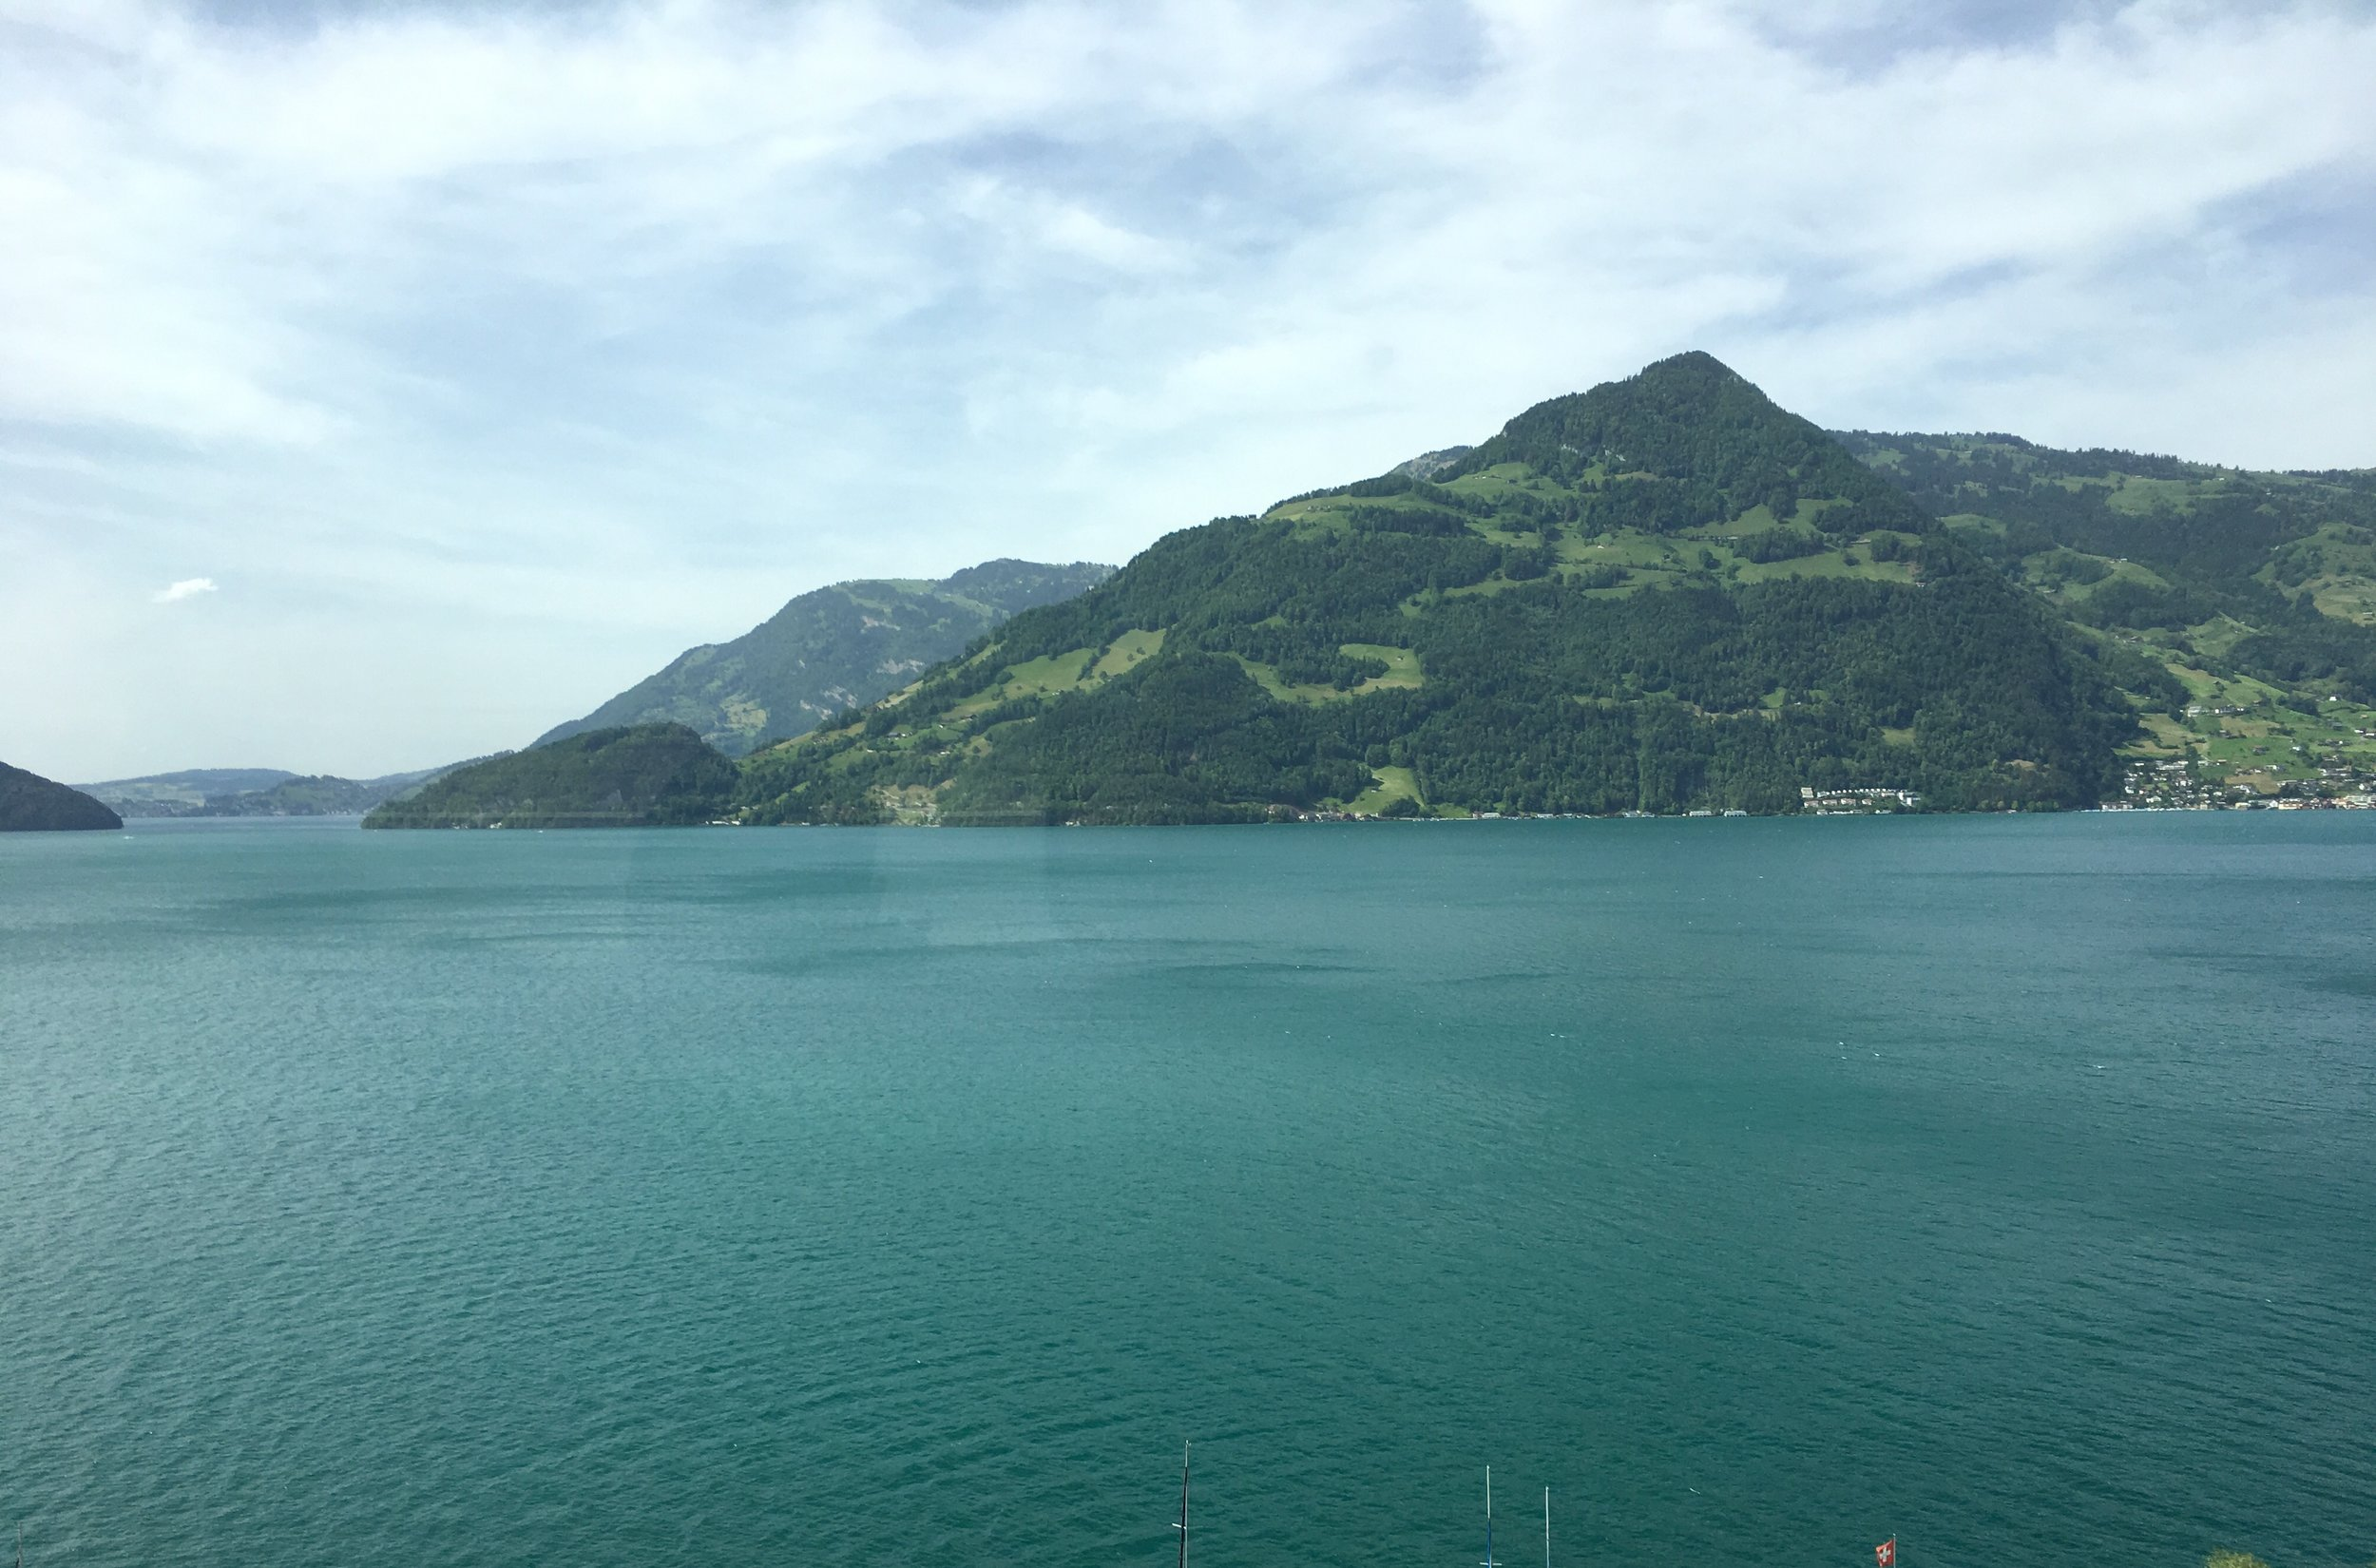 Another beautiful view on our long bus ride into Switzerland.